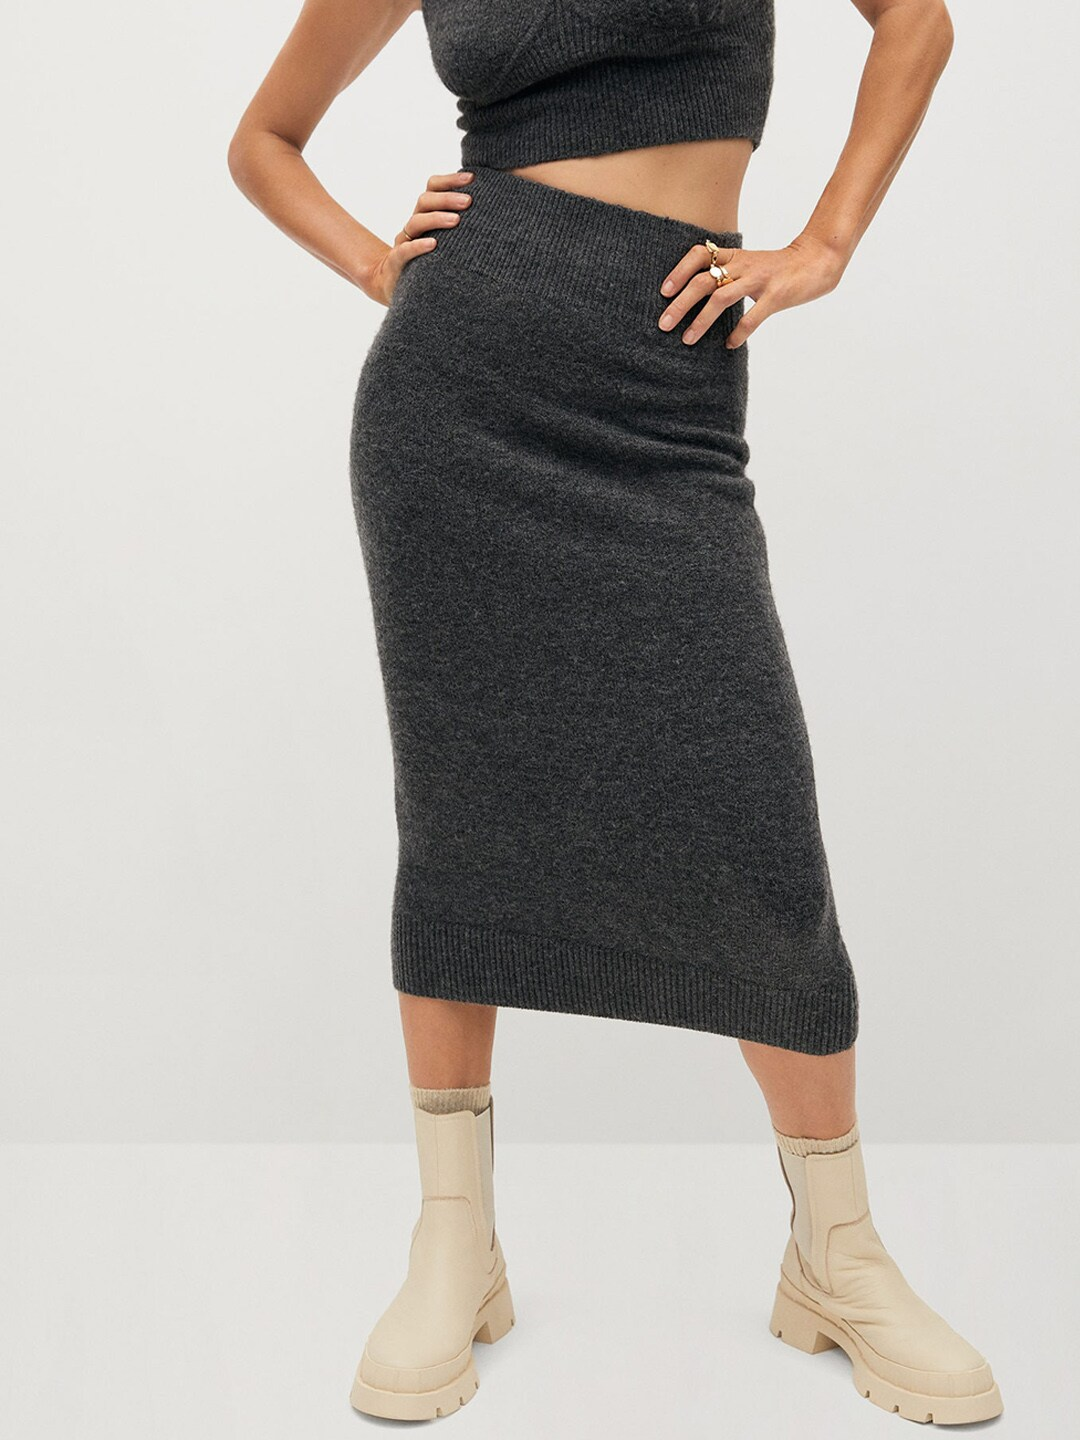 MANGO Women Charcoal Grey Solid Knitted Straight Skirt